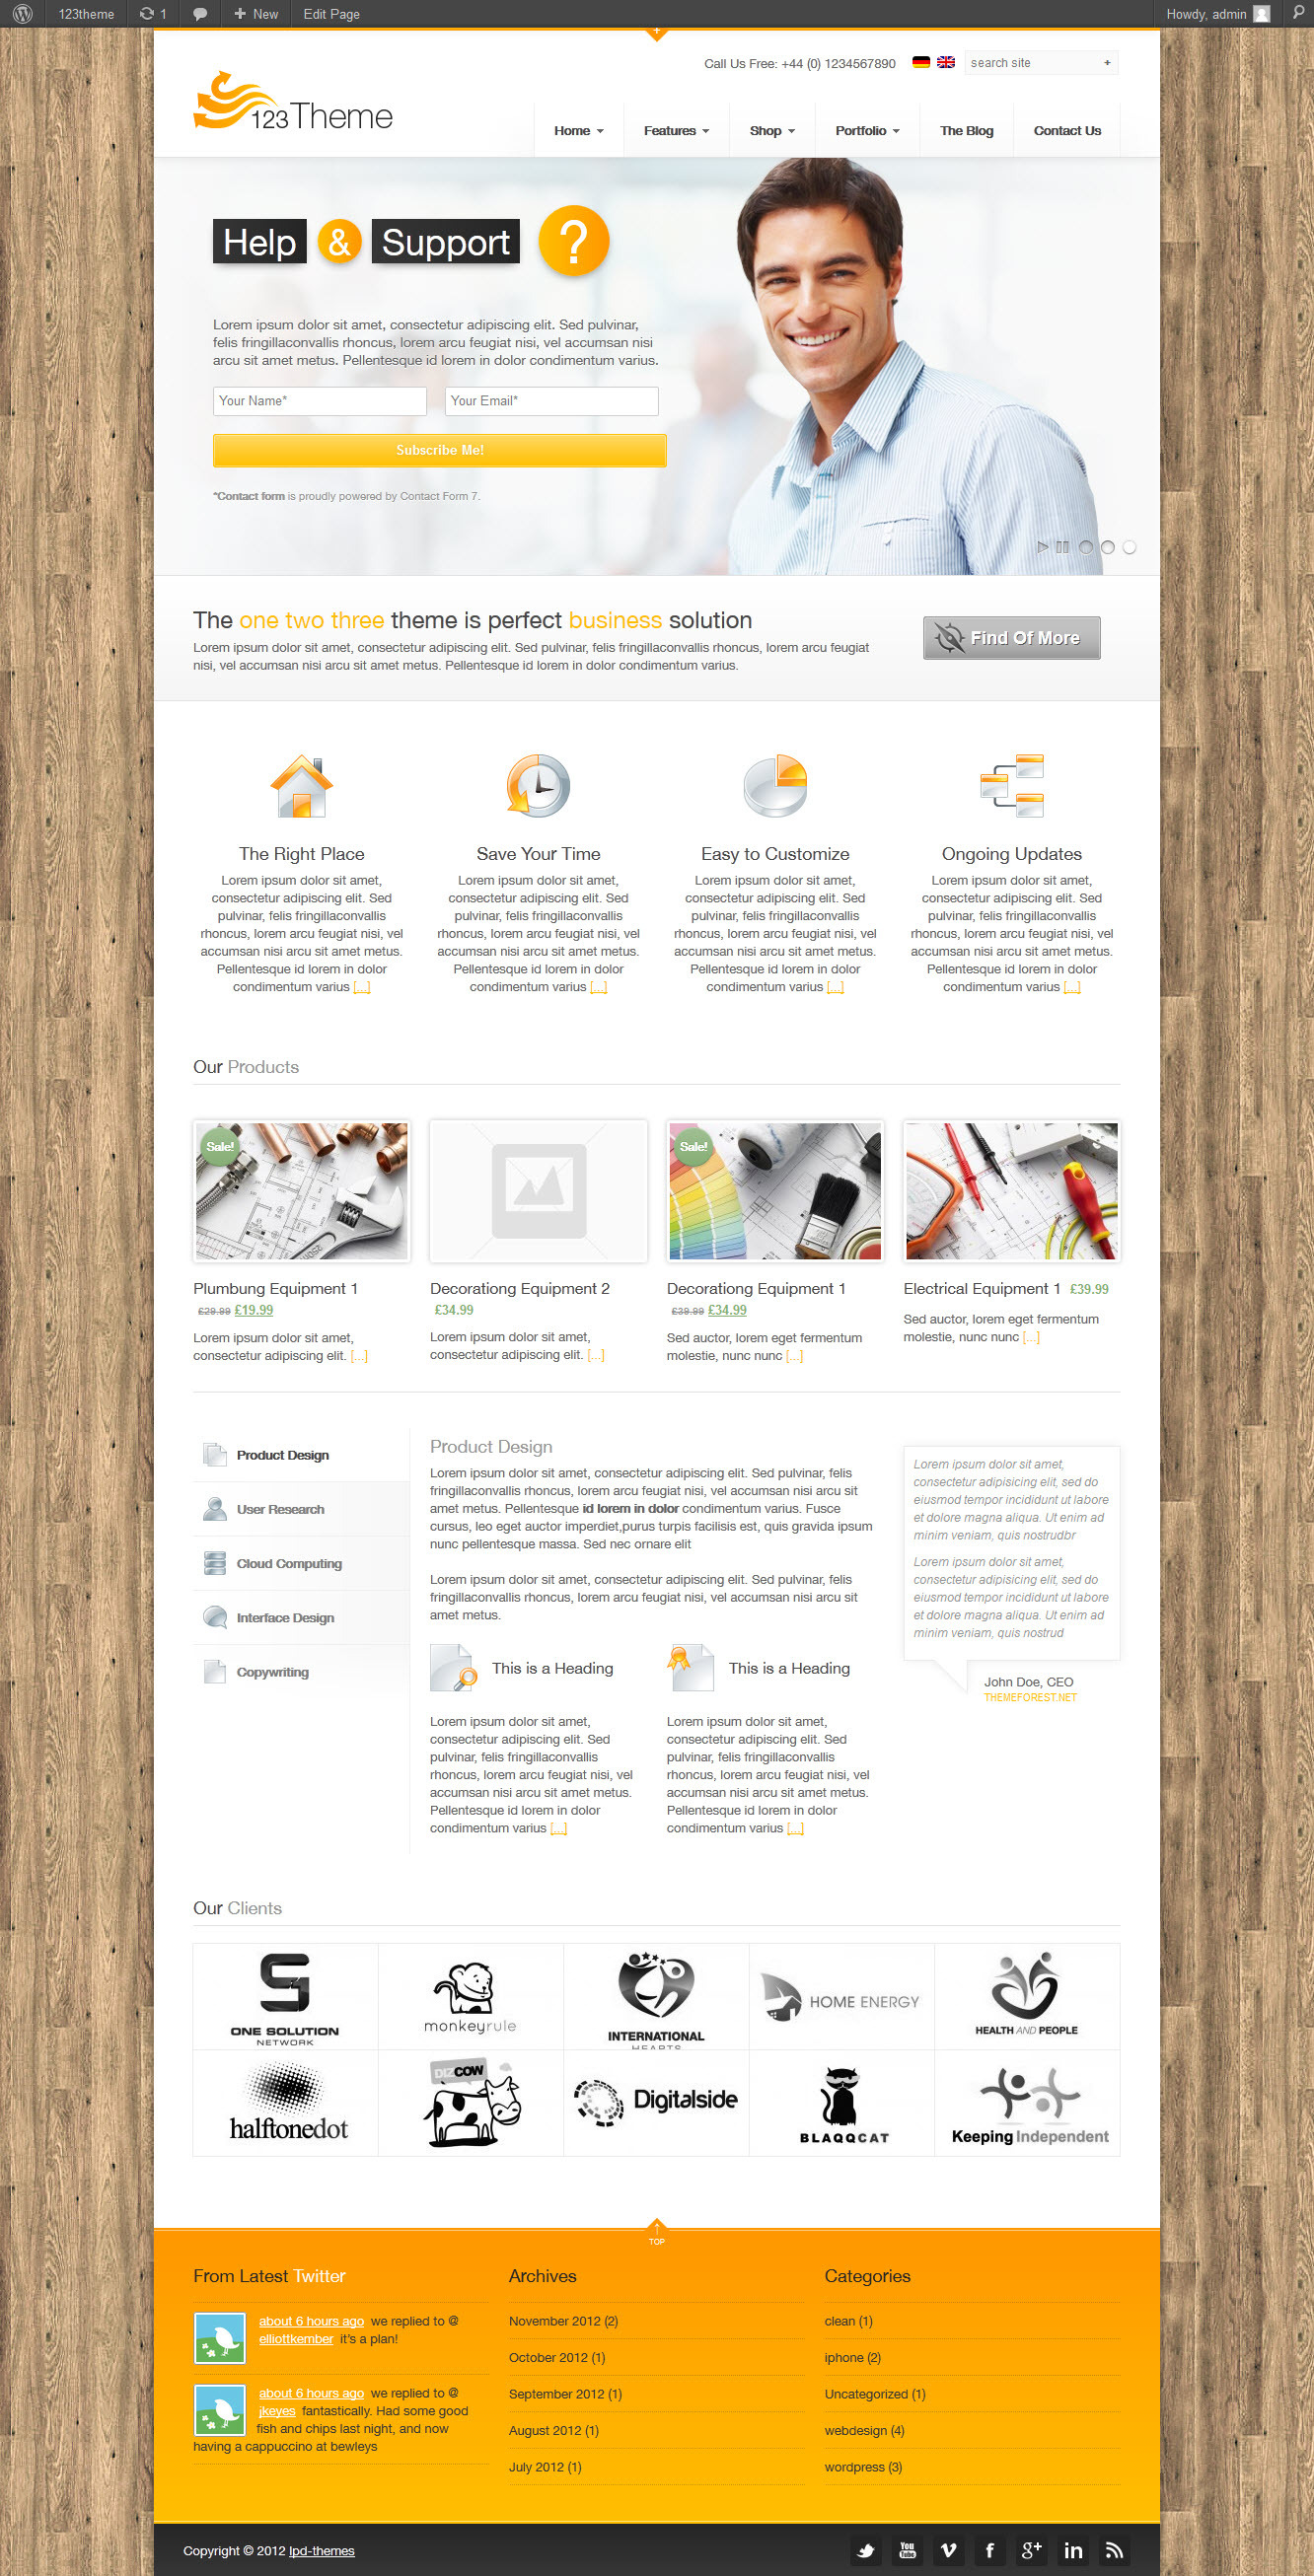 123Theme Business &amp; eCommerce Wordpress Theme - 05_front_page